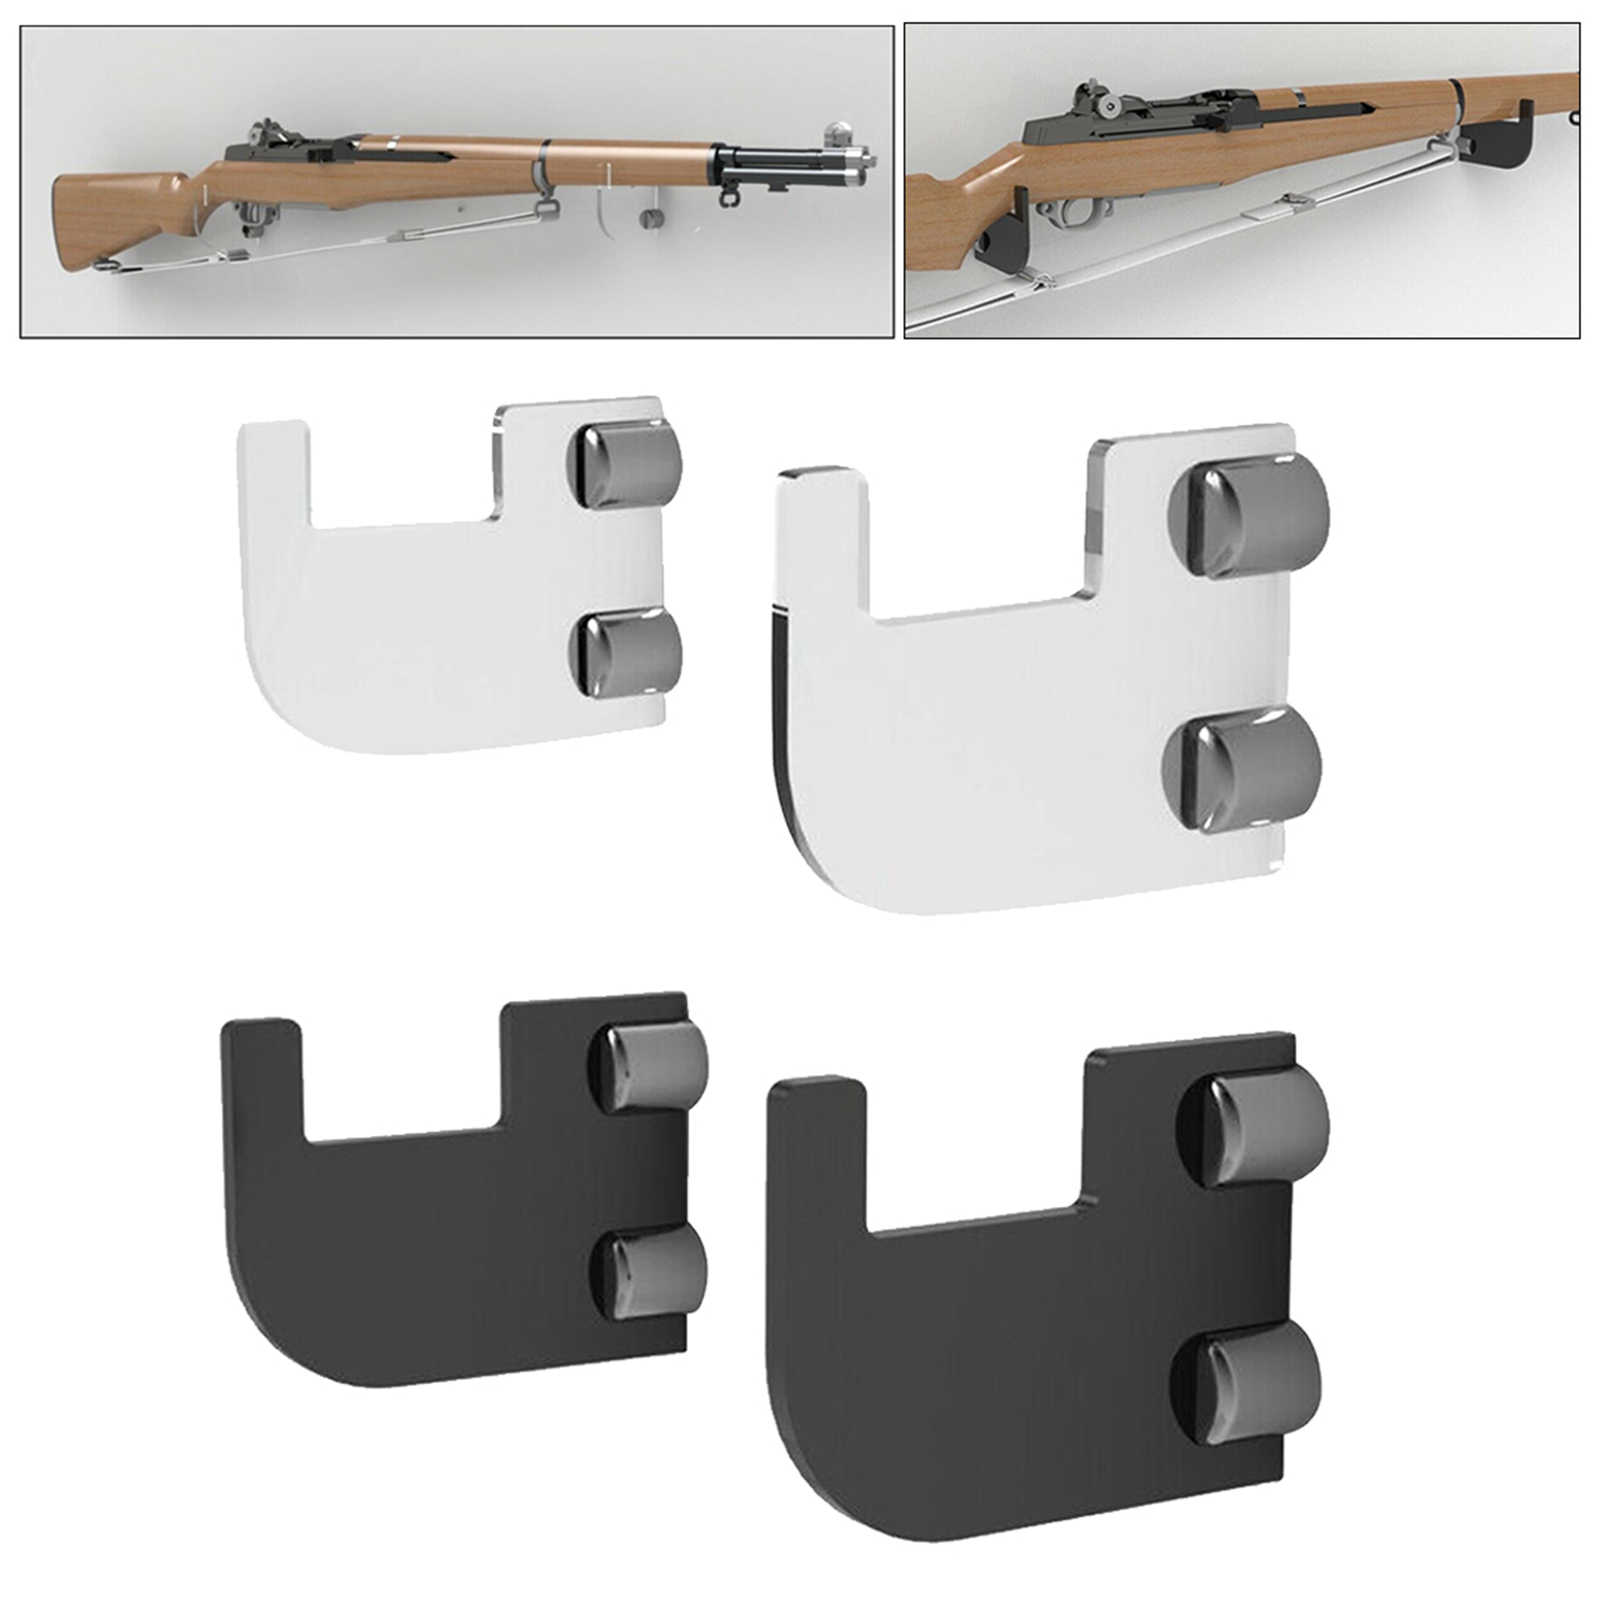 2x acrylic rifle holder musket bracket rifle wall mount display holder clear bookshelf furniture long supports steel mount